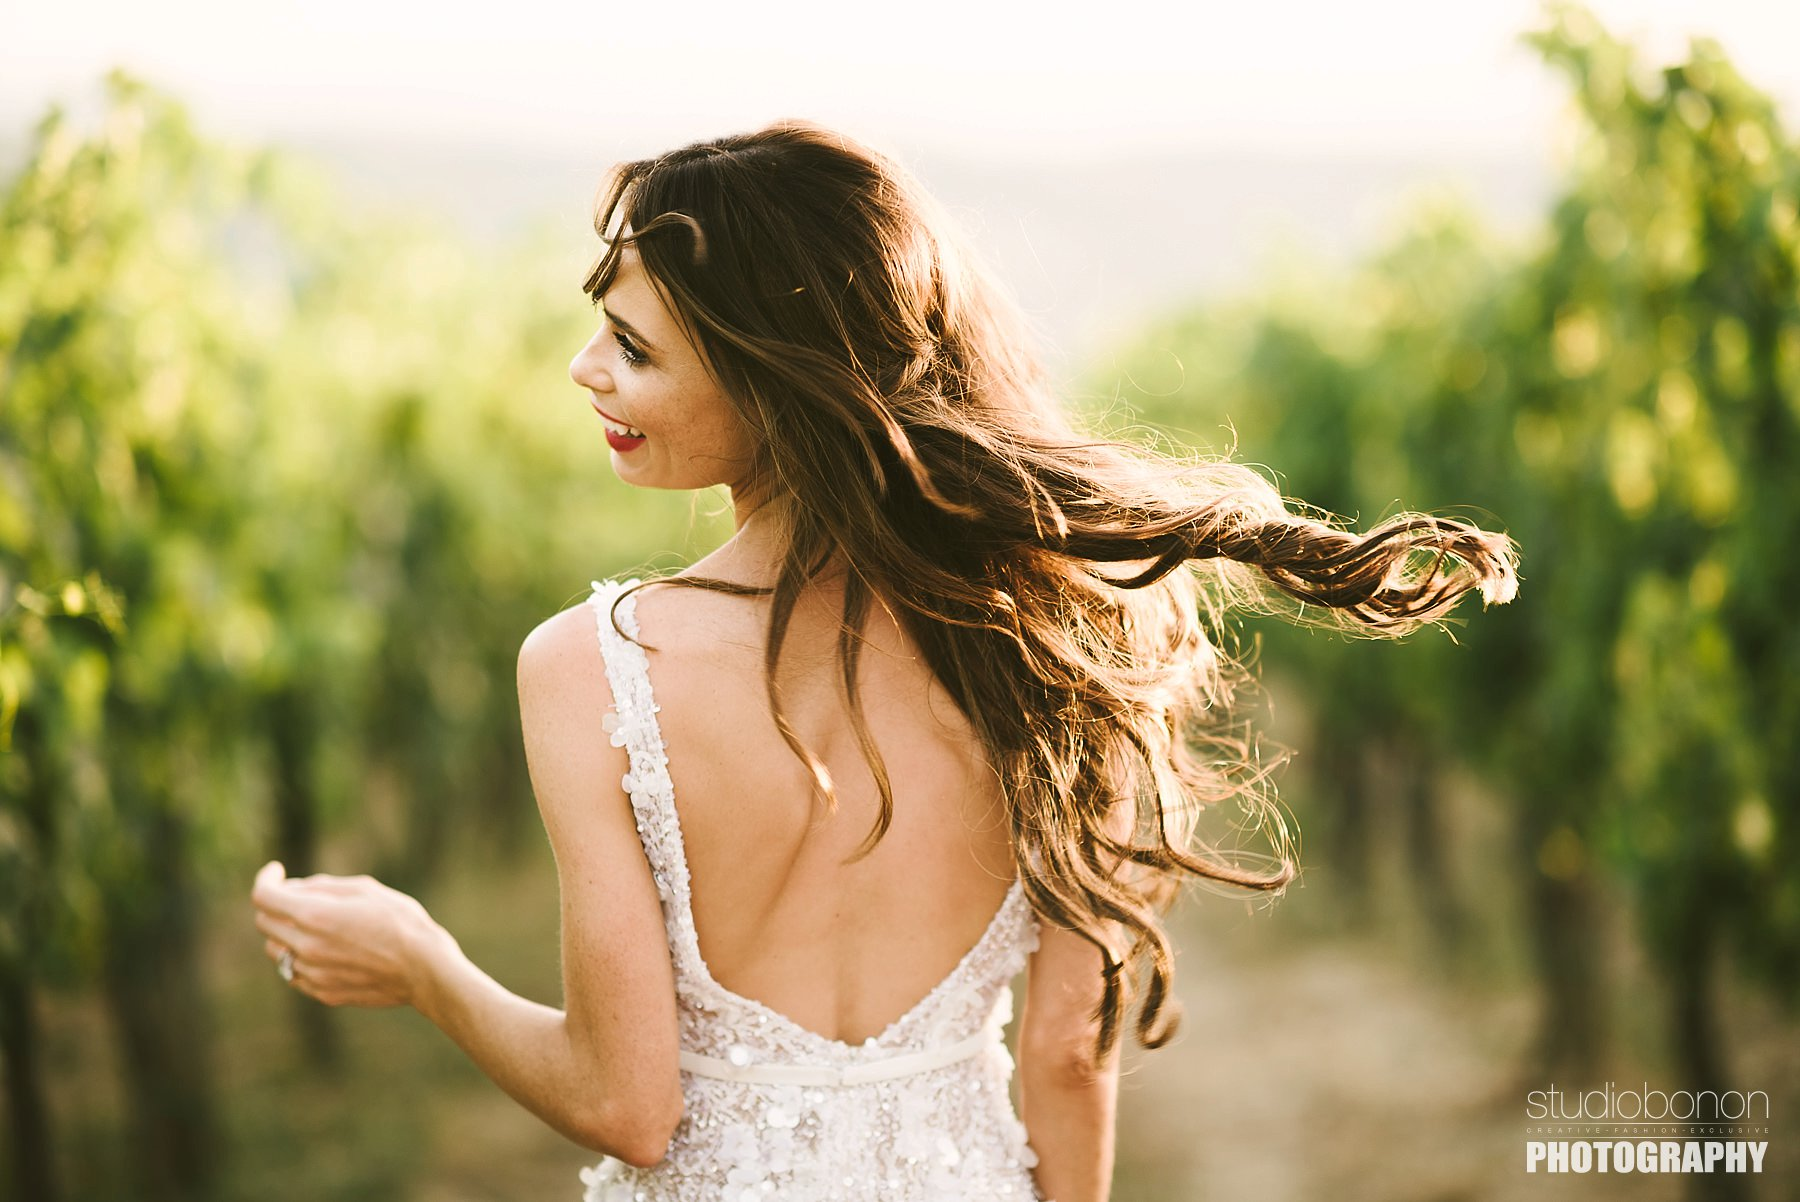 Beautiful bride Emily enjoy some lovely moment in a vineyard. Tuscany countryside destination wedding at Panzano in Chianti